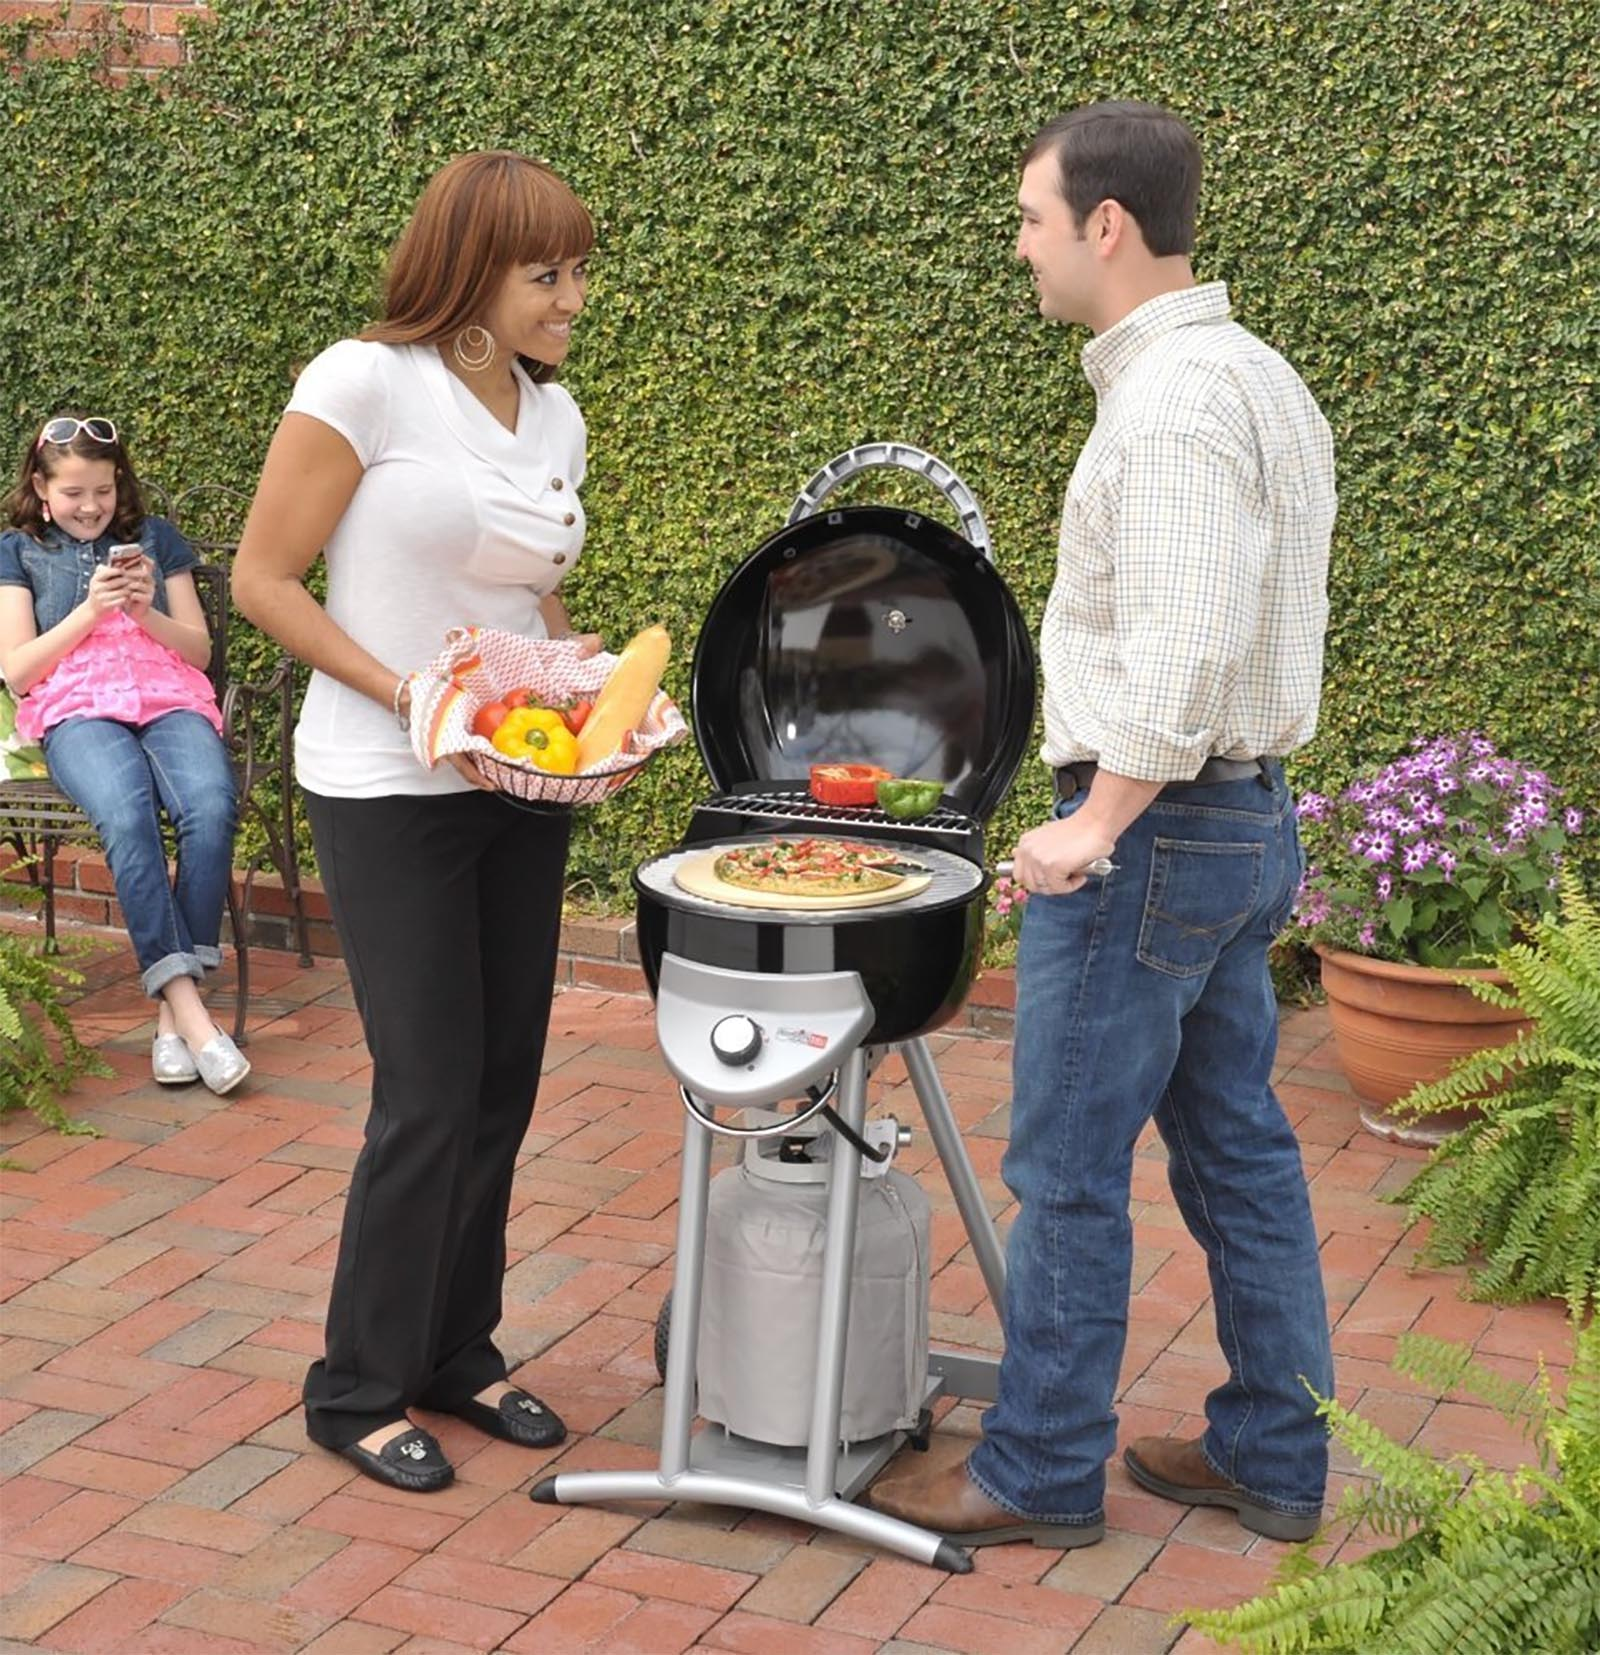 Char Broil Patio Bistro 240 TRU Infared pact Gas Grill Black